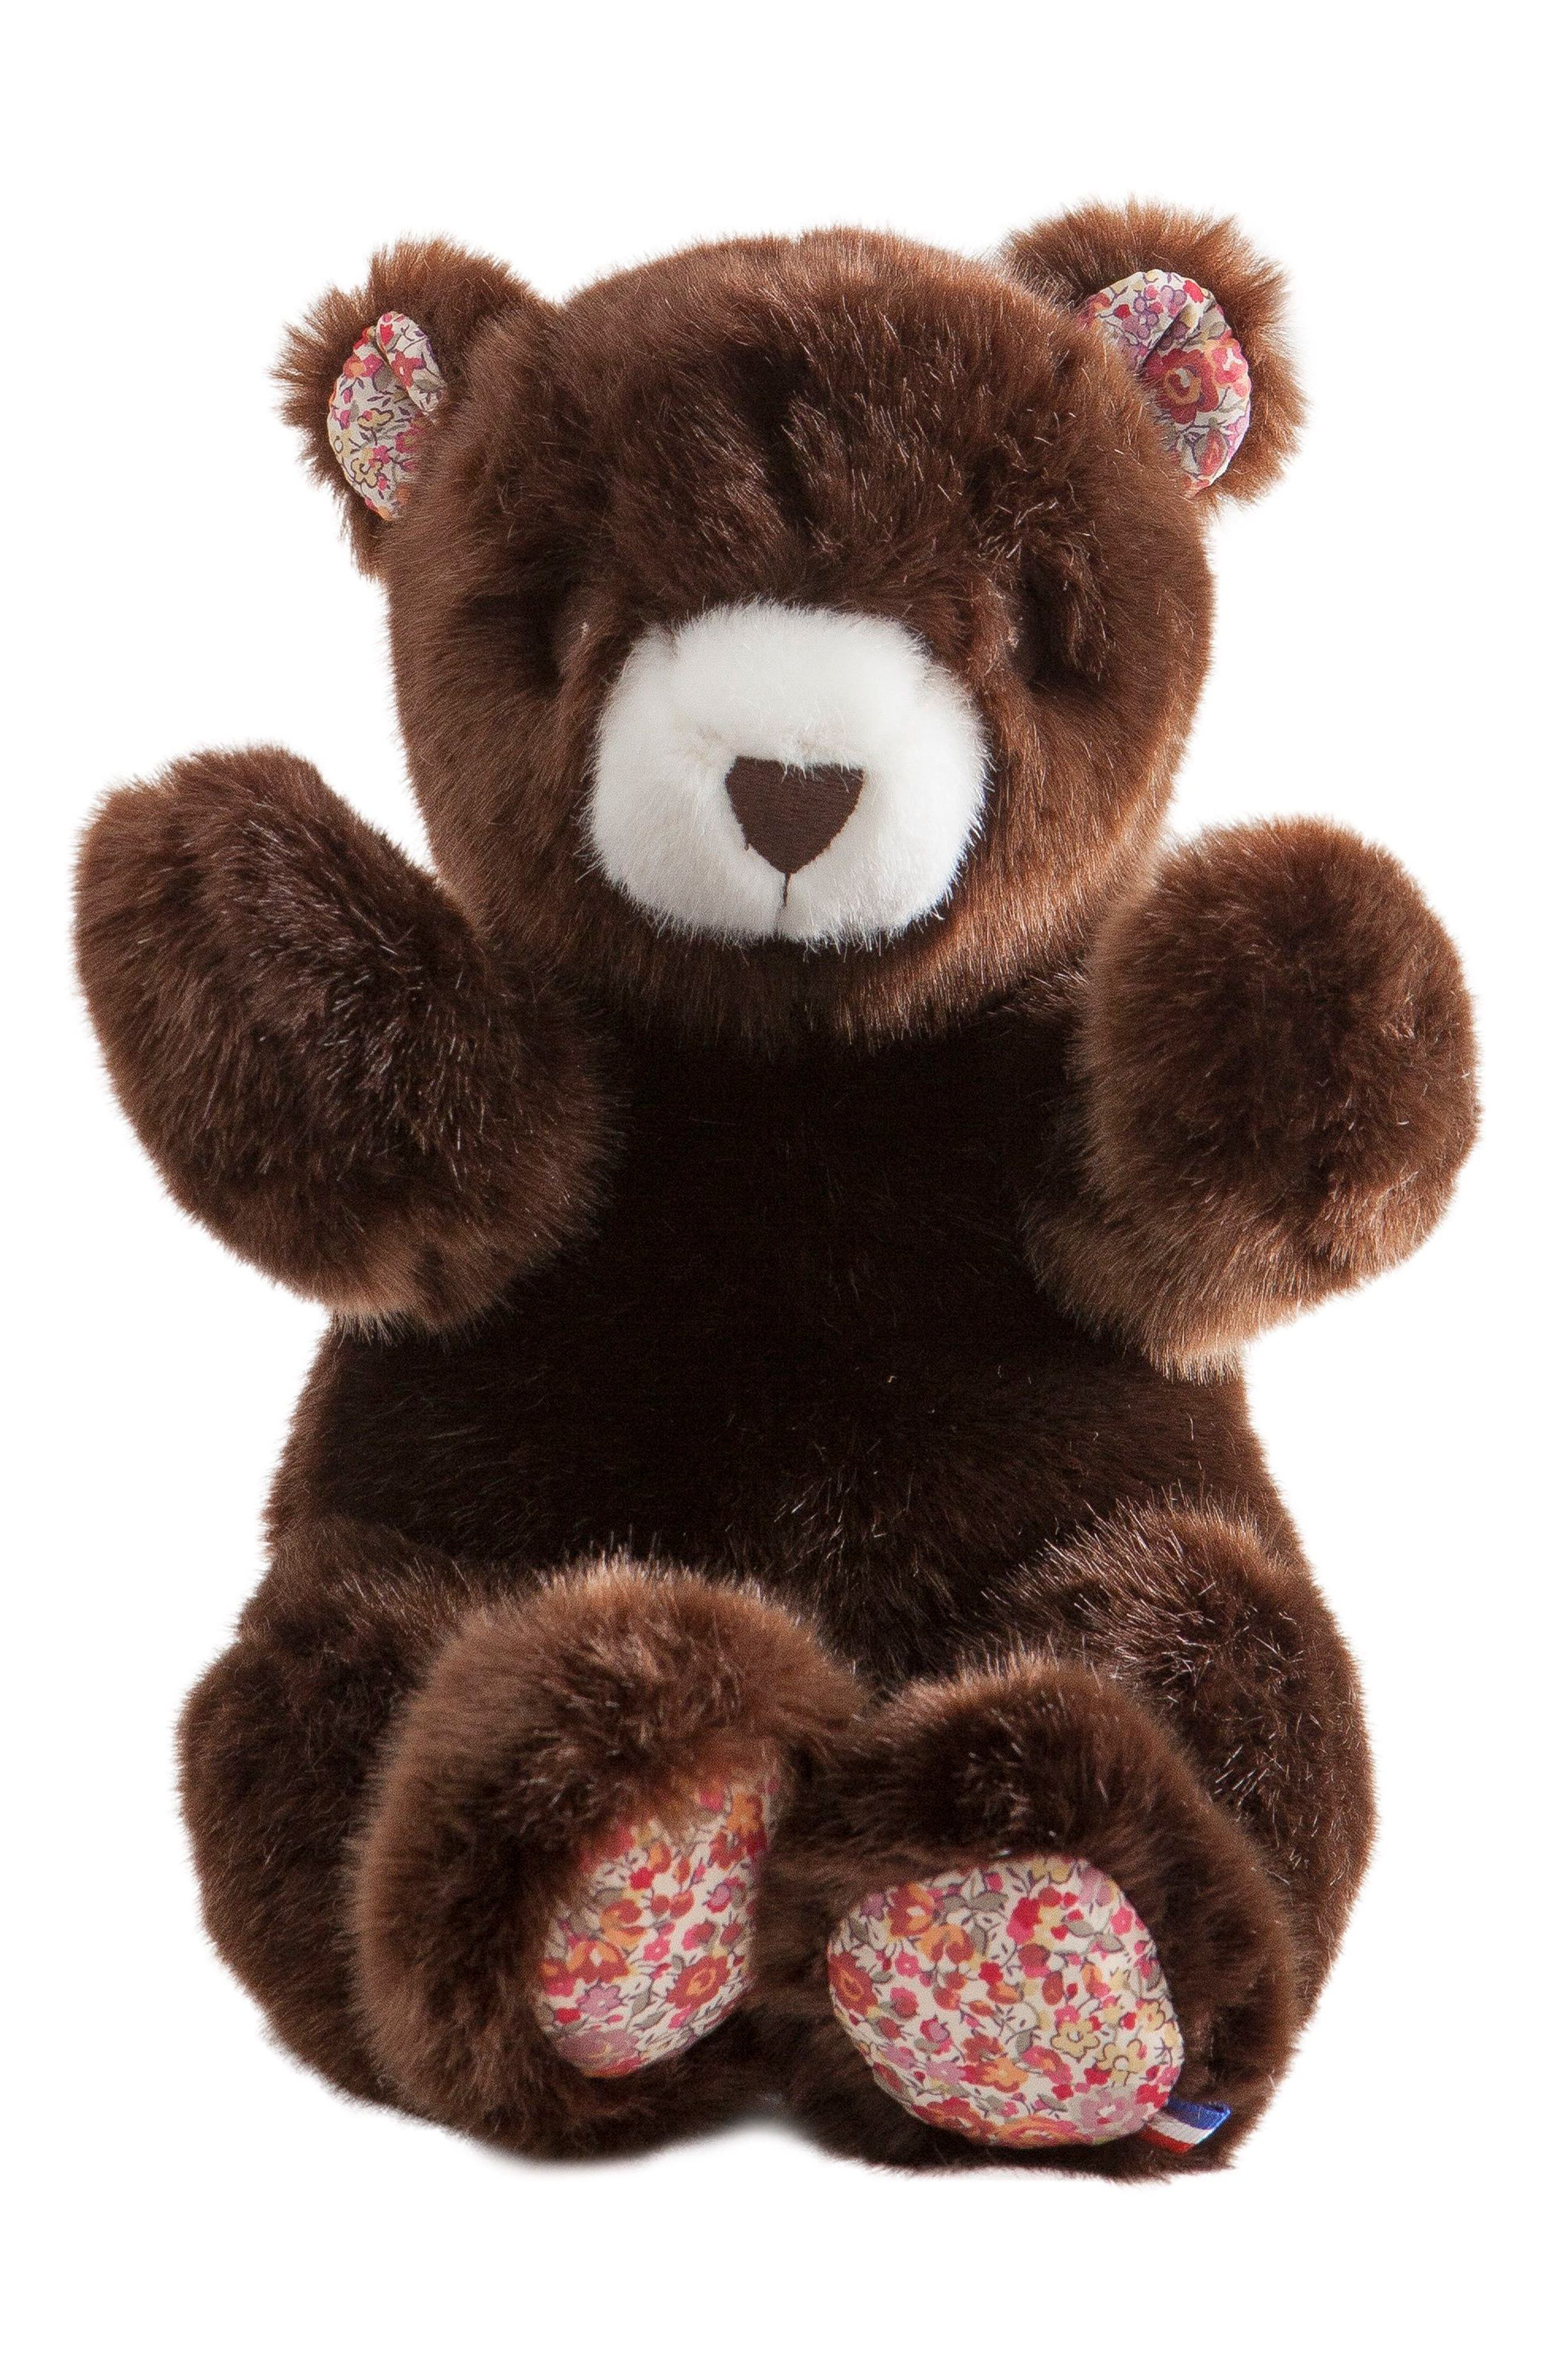 x Liberty of London Robert the Bear Stuffed Animal,                             Main thumbnail 1, color,                             BROWN